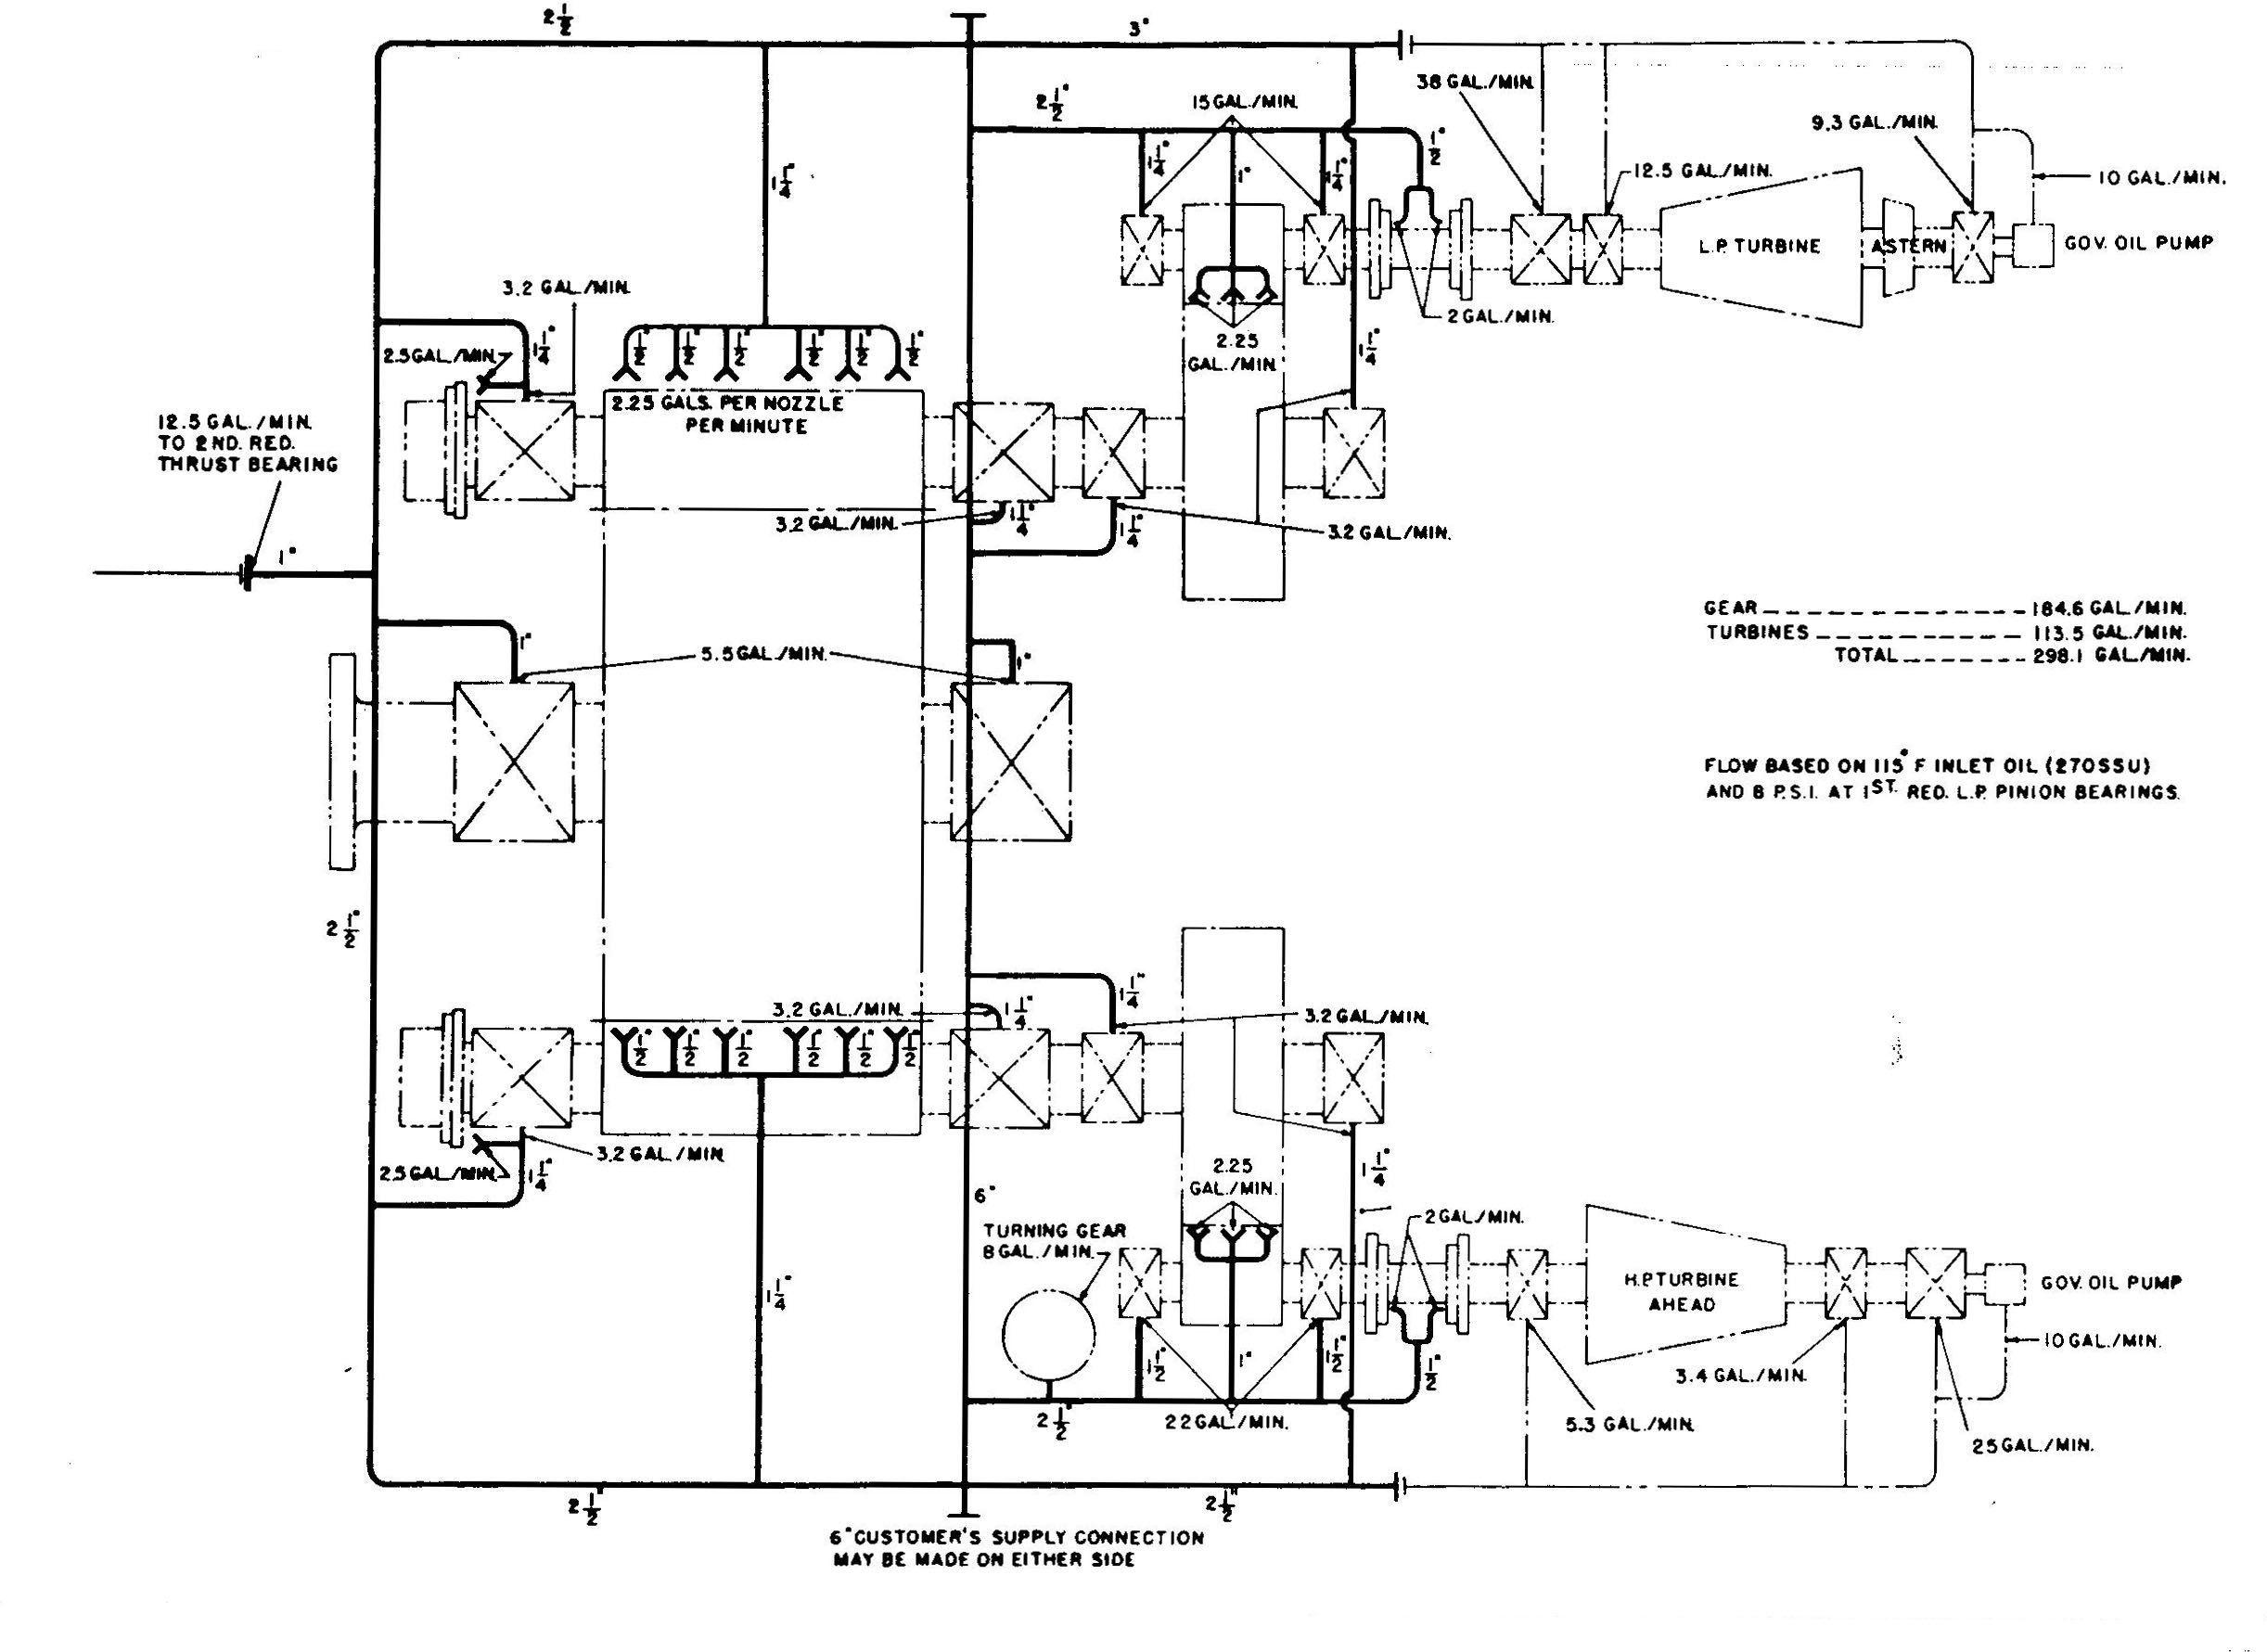 Tsps Engineering Manual Piping Diagram Ship Lube Oil Flow To Bearing And Gears